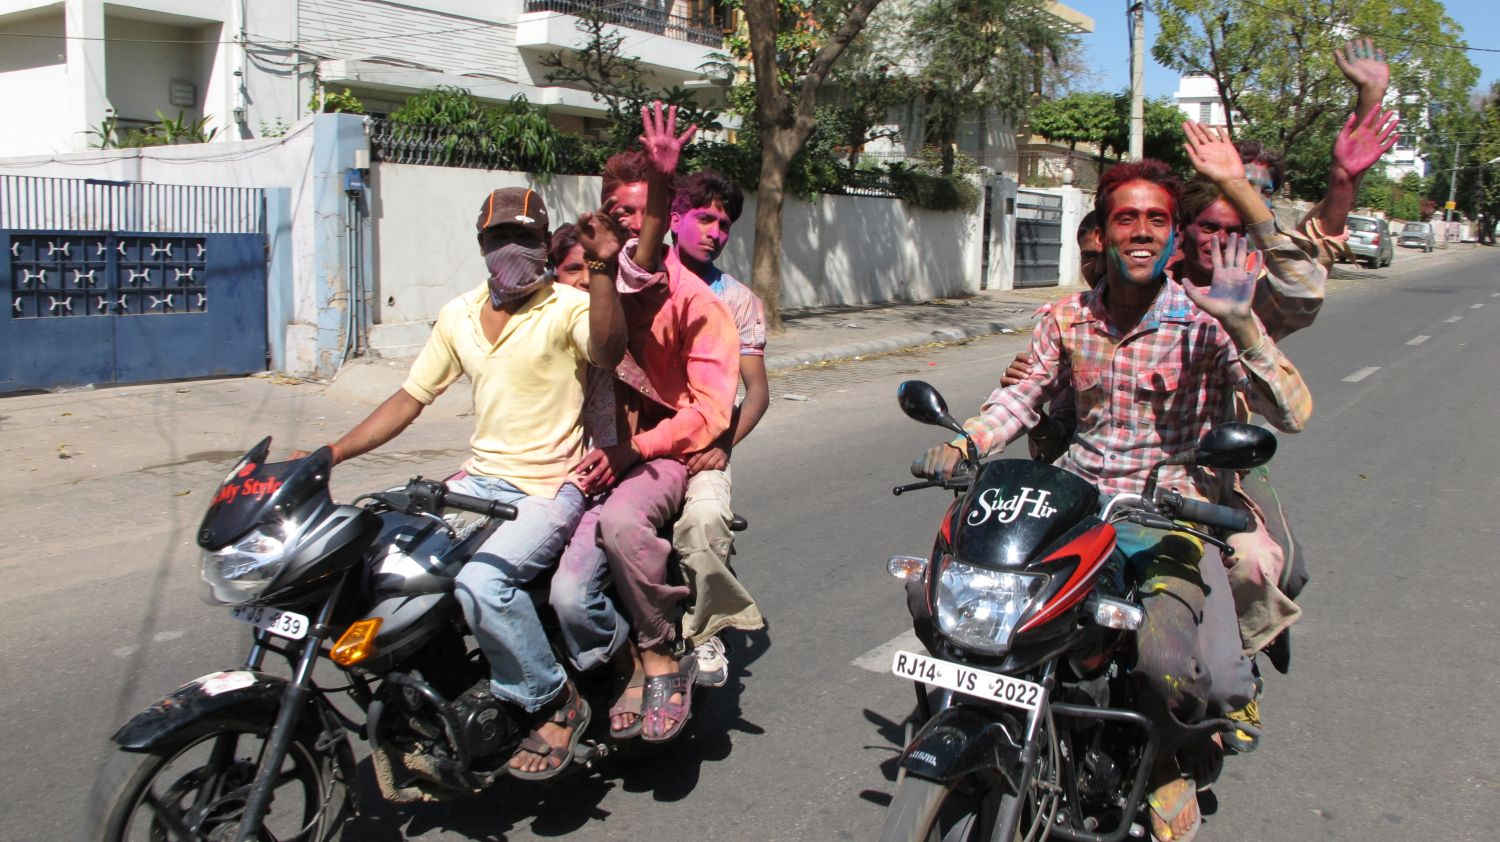 Jaipur | The Holi 24 | Feast of colors | Indian men celebrating the Holi | ©sandrine cohen